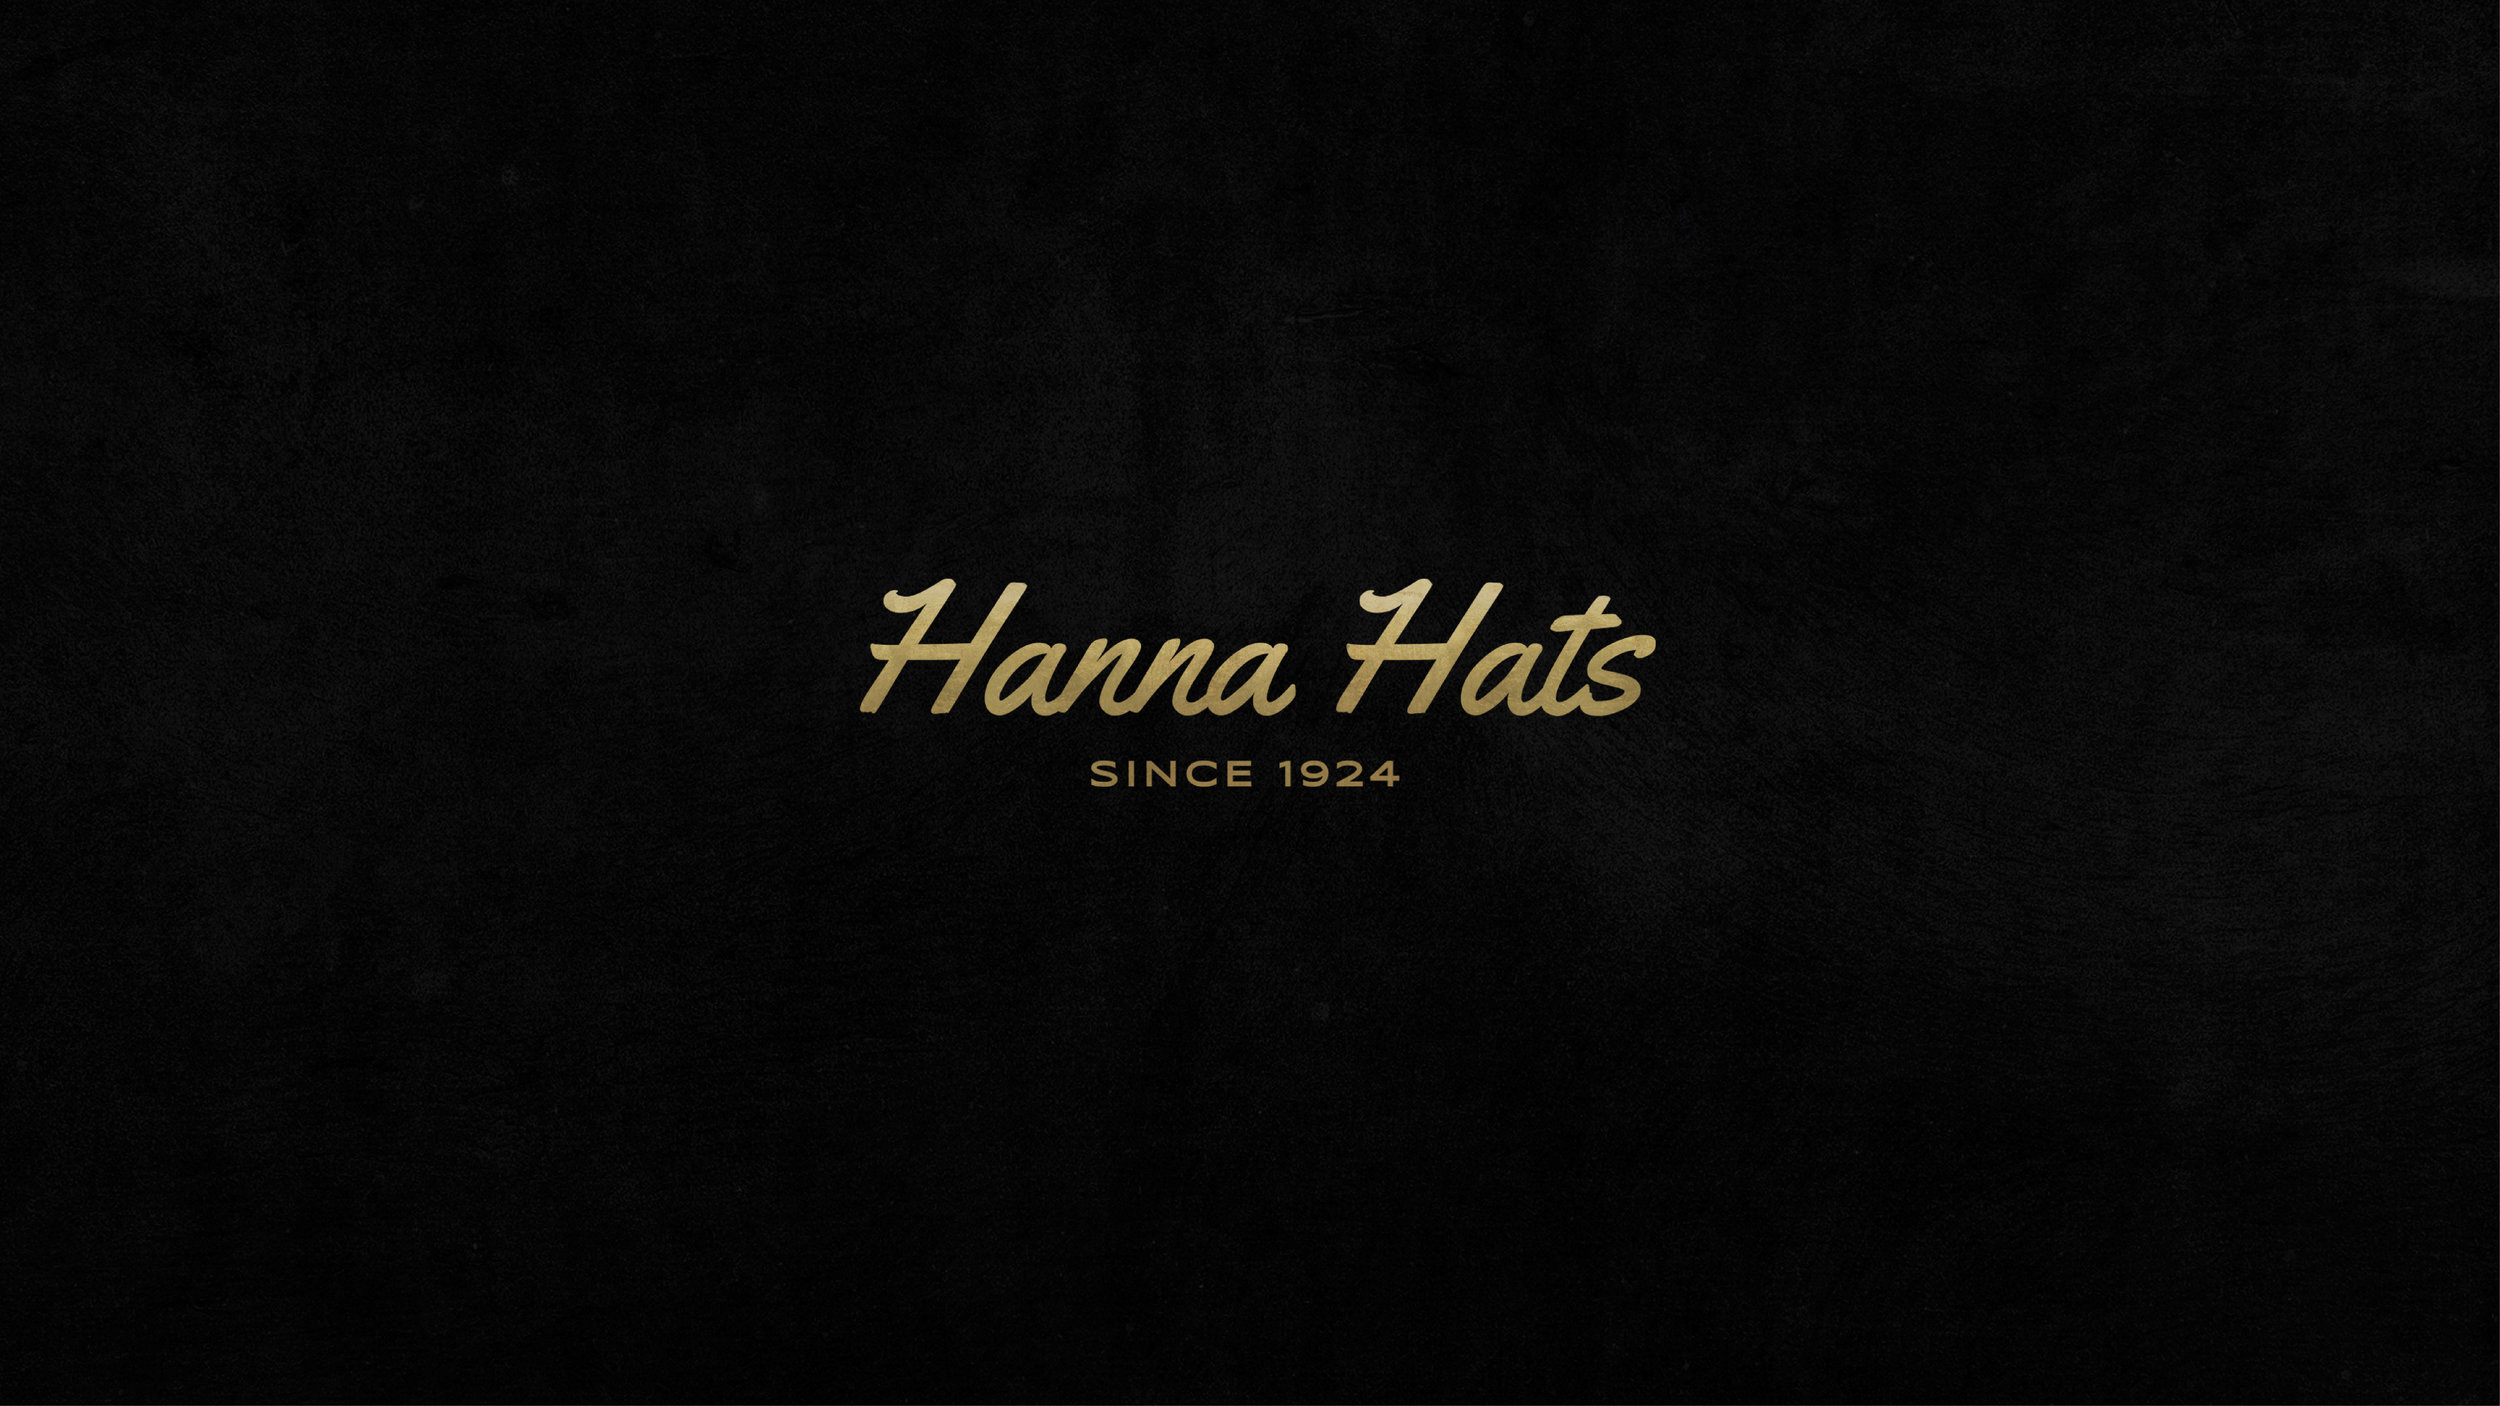 Here's the simplified overall logo. We jettisoned the blocky typography and used the typeface that's more accessible and reflects individuality of the Hanna Hats brand. We went along with the suggestion of using a rich gold colour and it works to convey the history and prestige of the Hanna Hats brand.